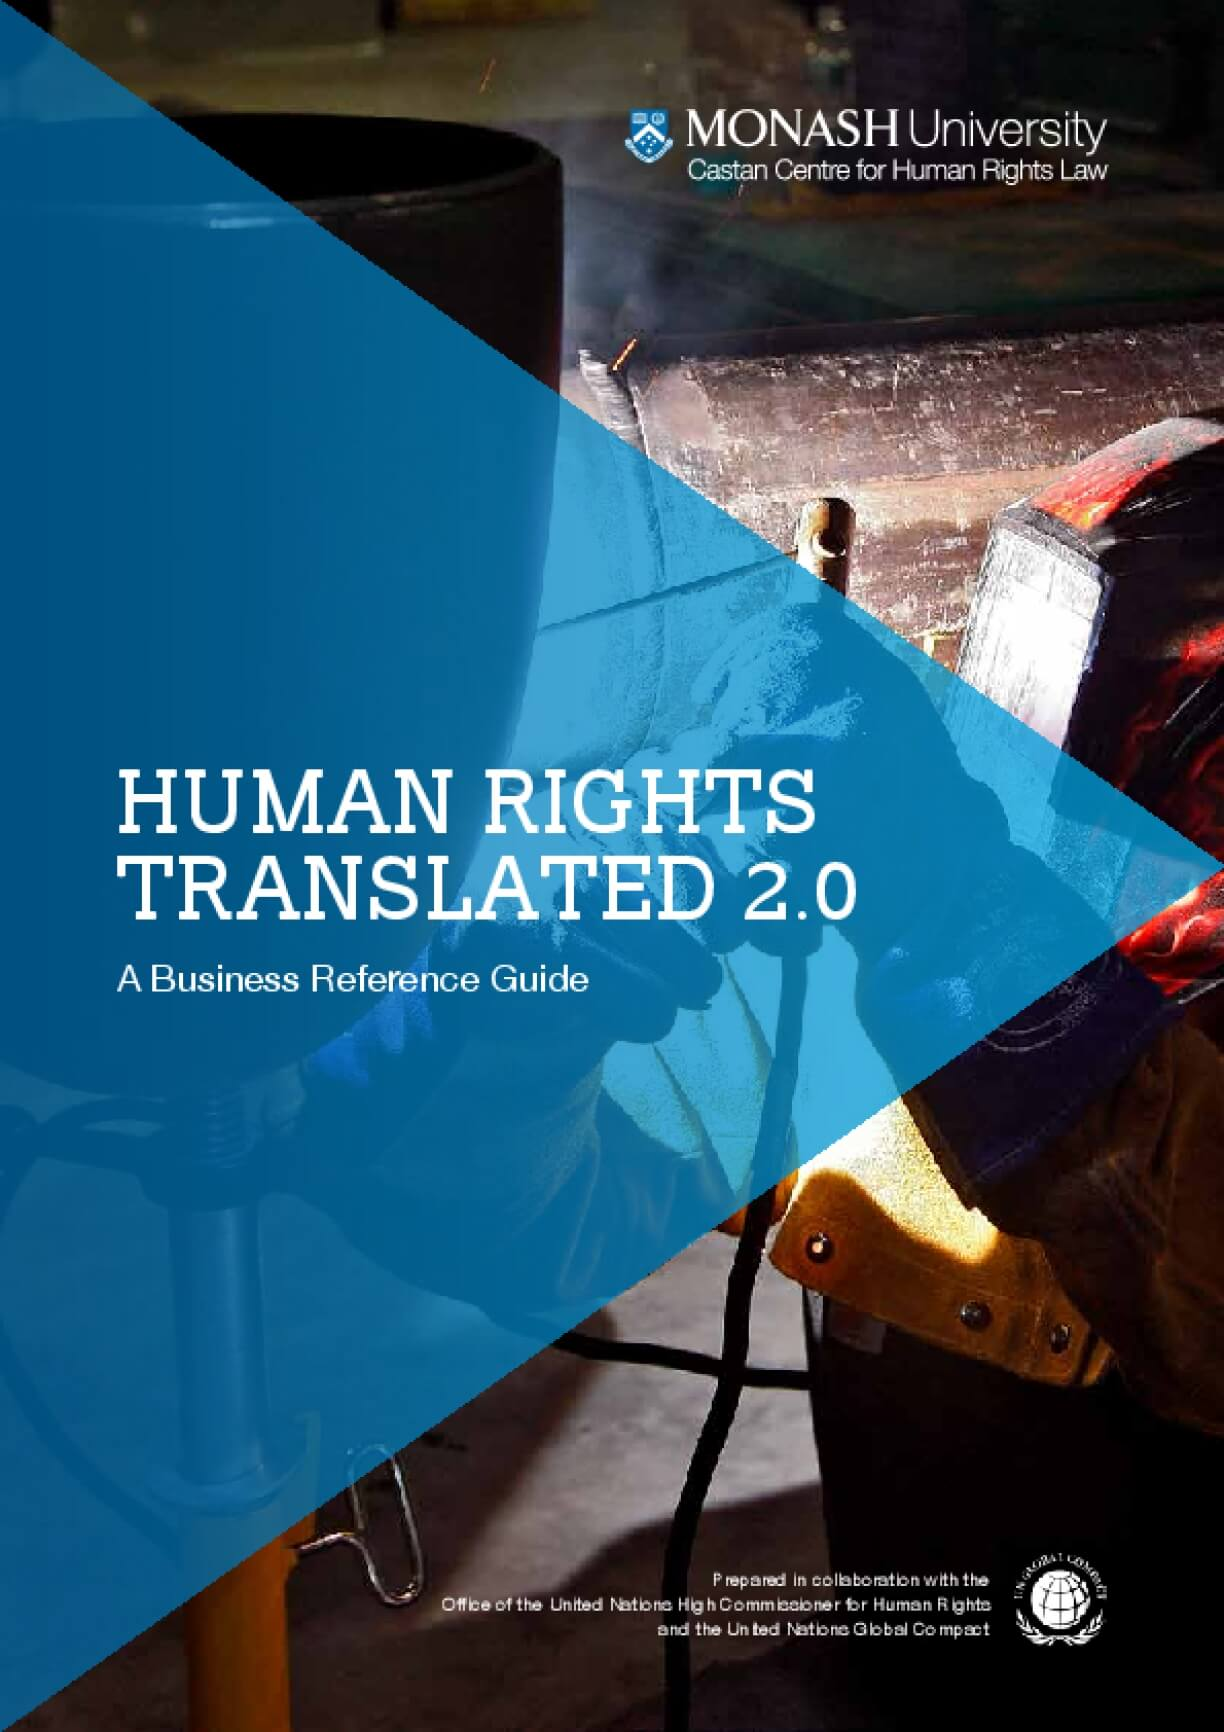 Human Rights Translated 2.0: A Business Reference Guide